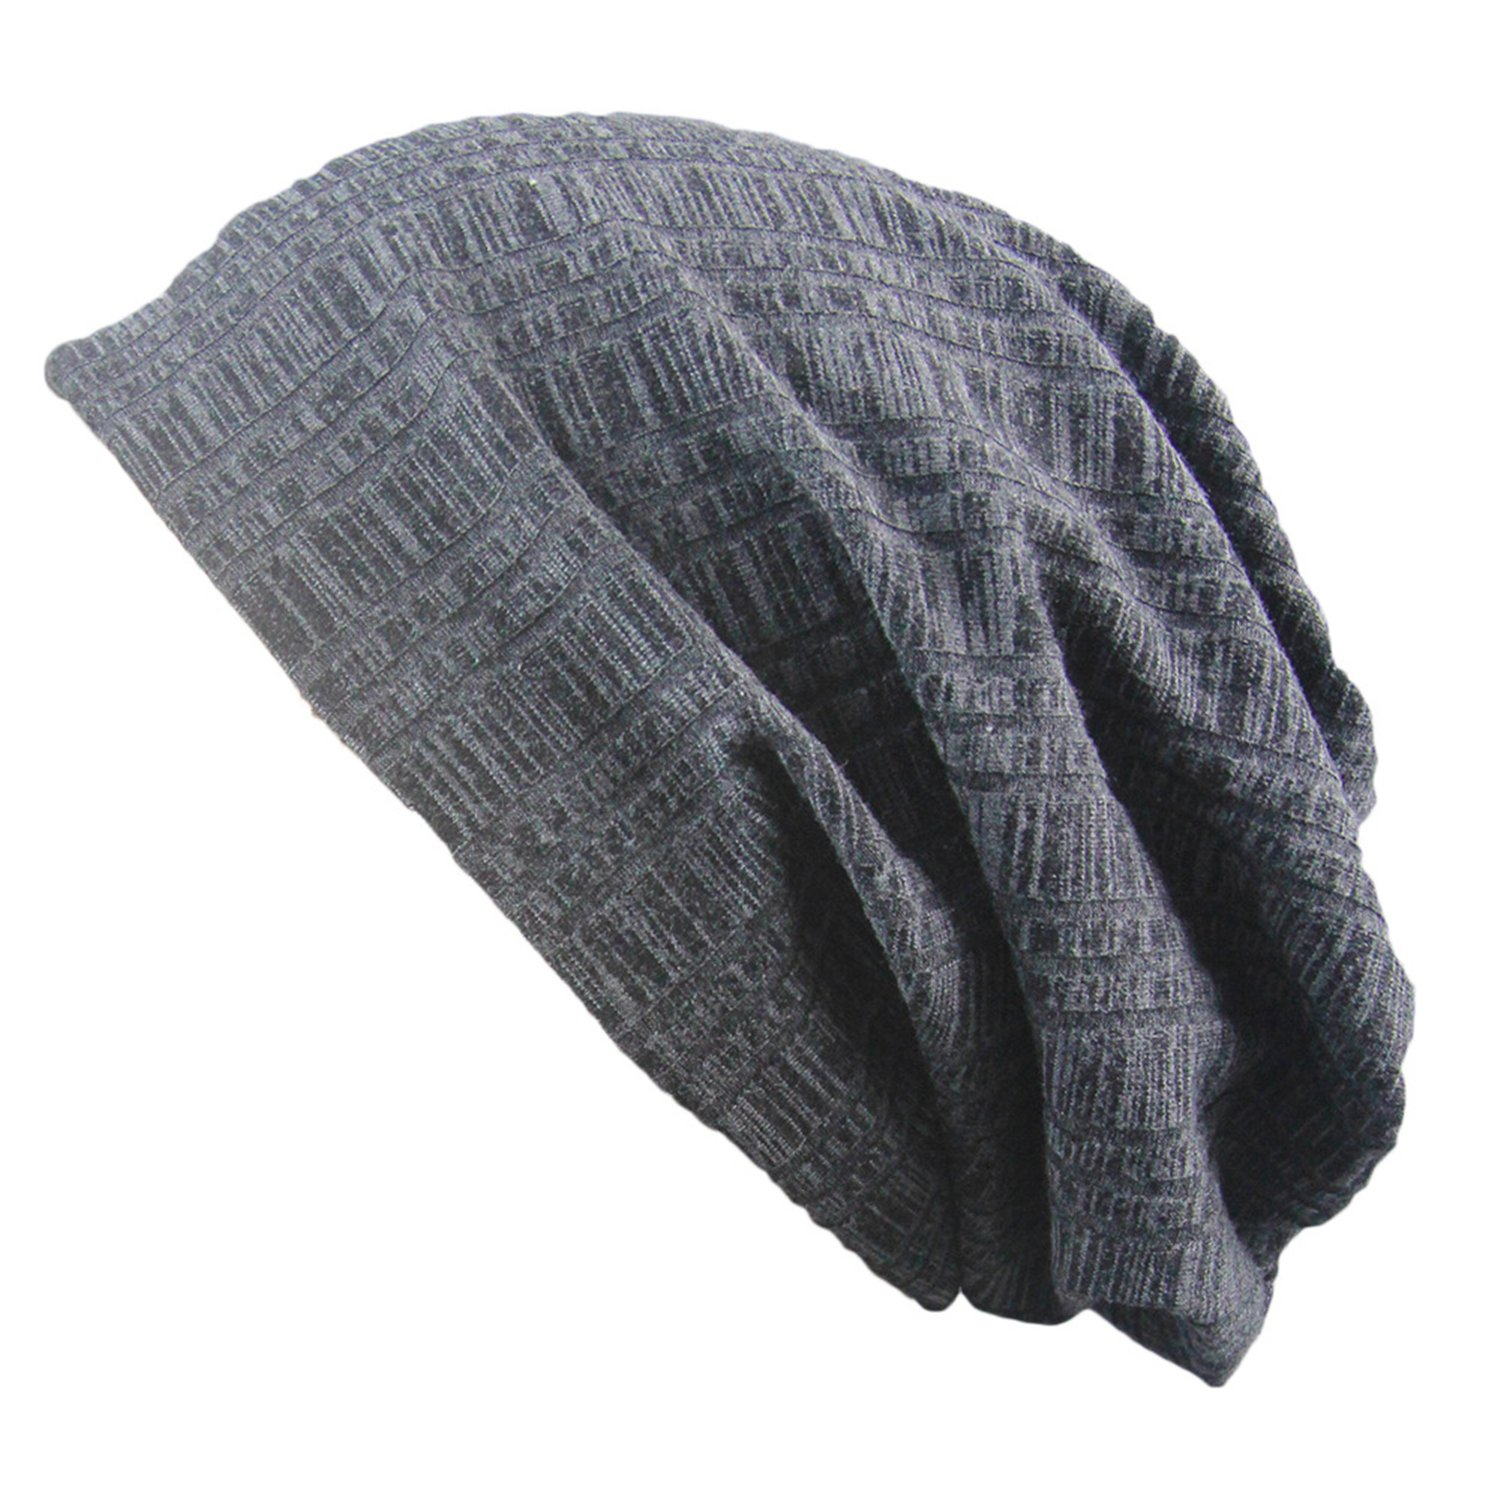 Unisex Cuffed or Slouchy Ribbed Midweight Beanie Cap for Men or Women Slivery Color Olancha 100/% Knit Wool